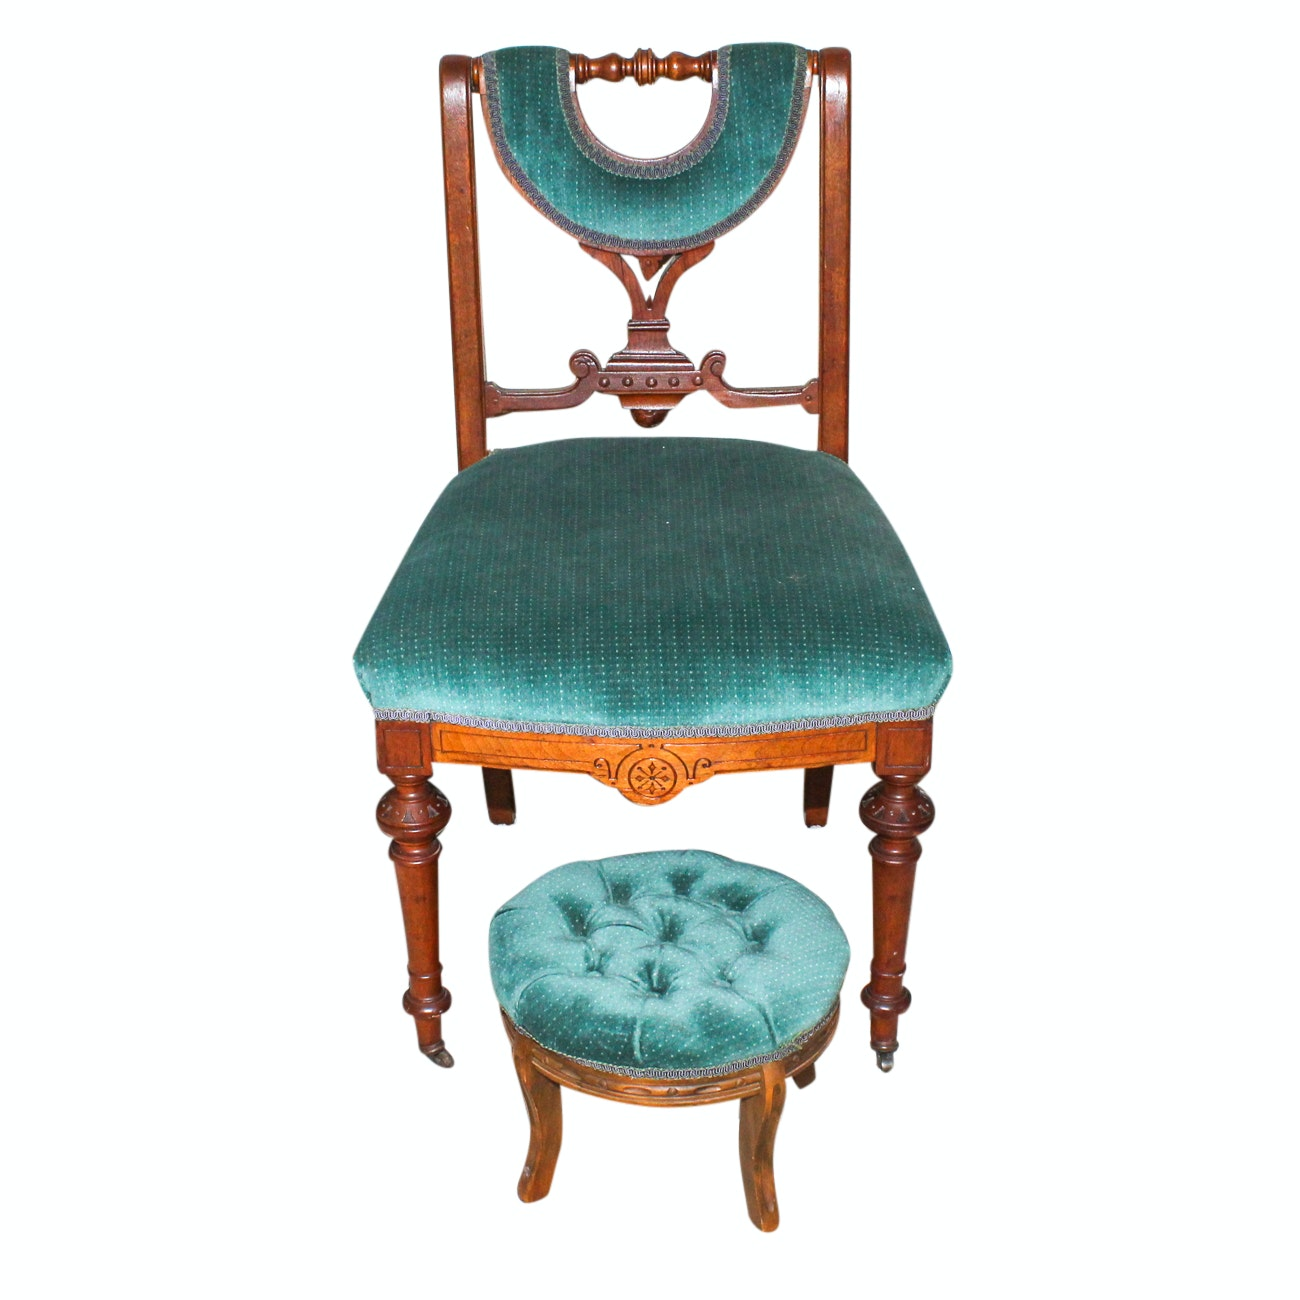 Antique Upholstered Chair and Footstool